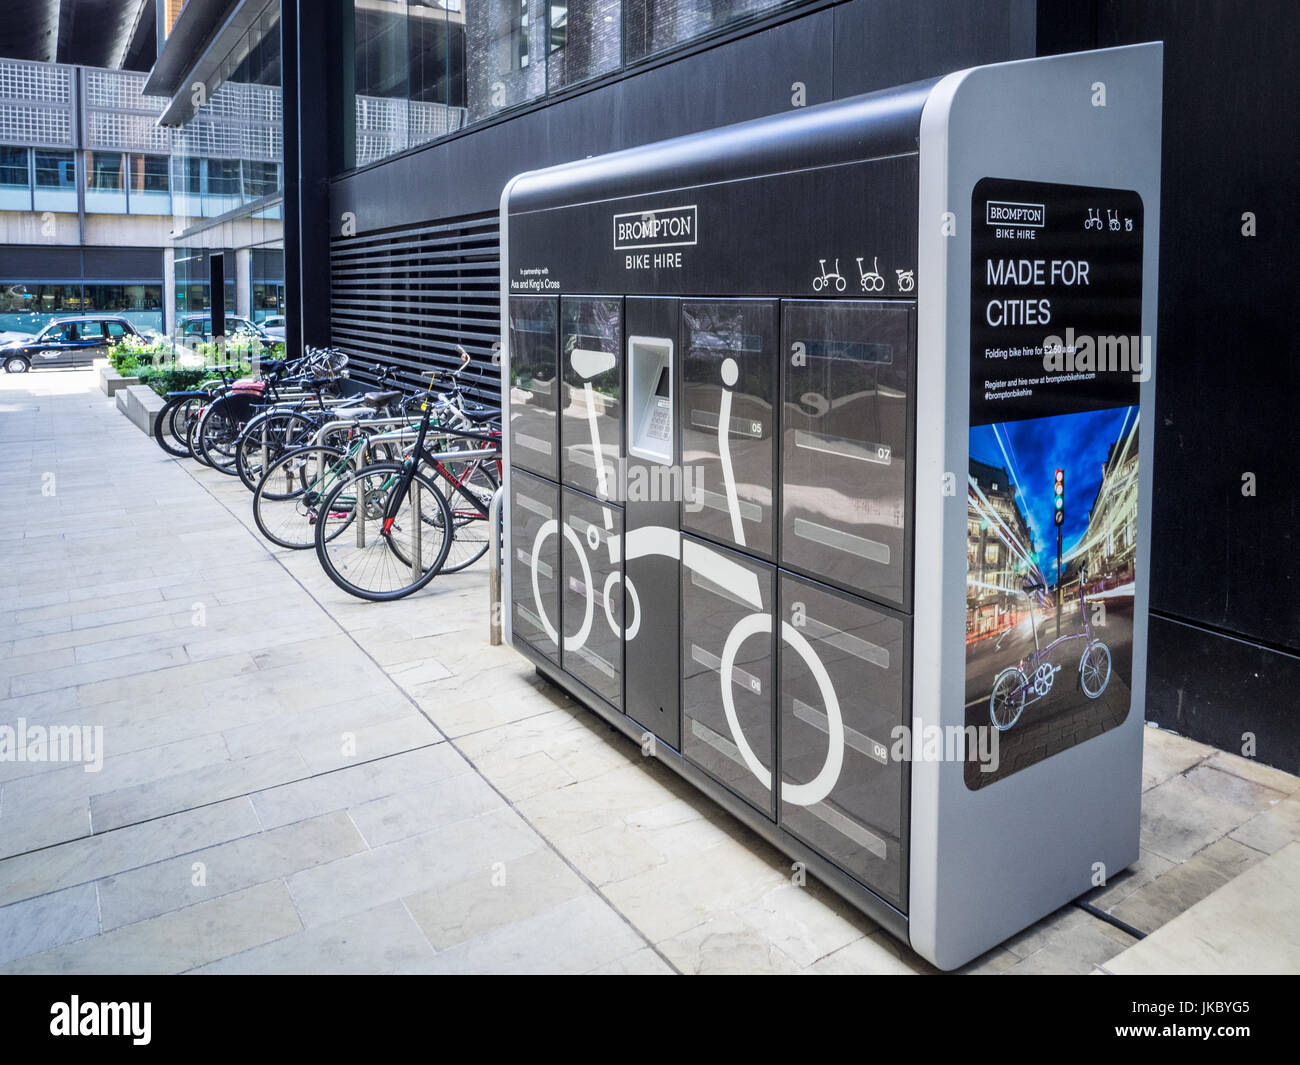 Brompton Folding Bike Hire vending machine outside the Google Offices in London's Kings Cross development - Stock Image